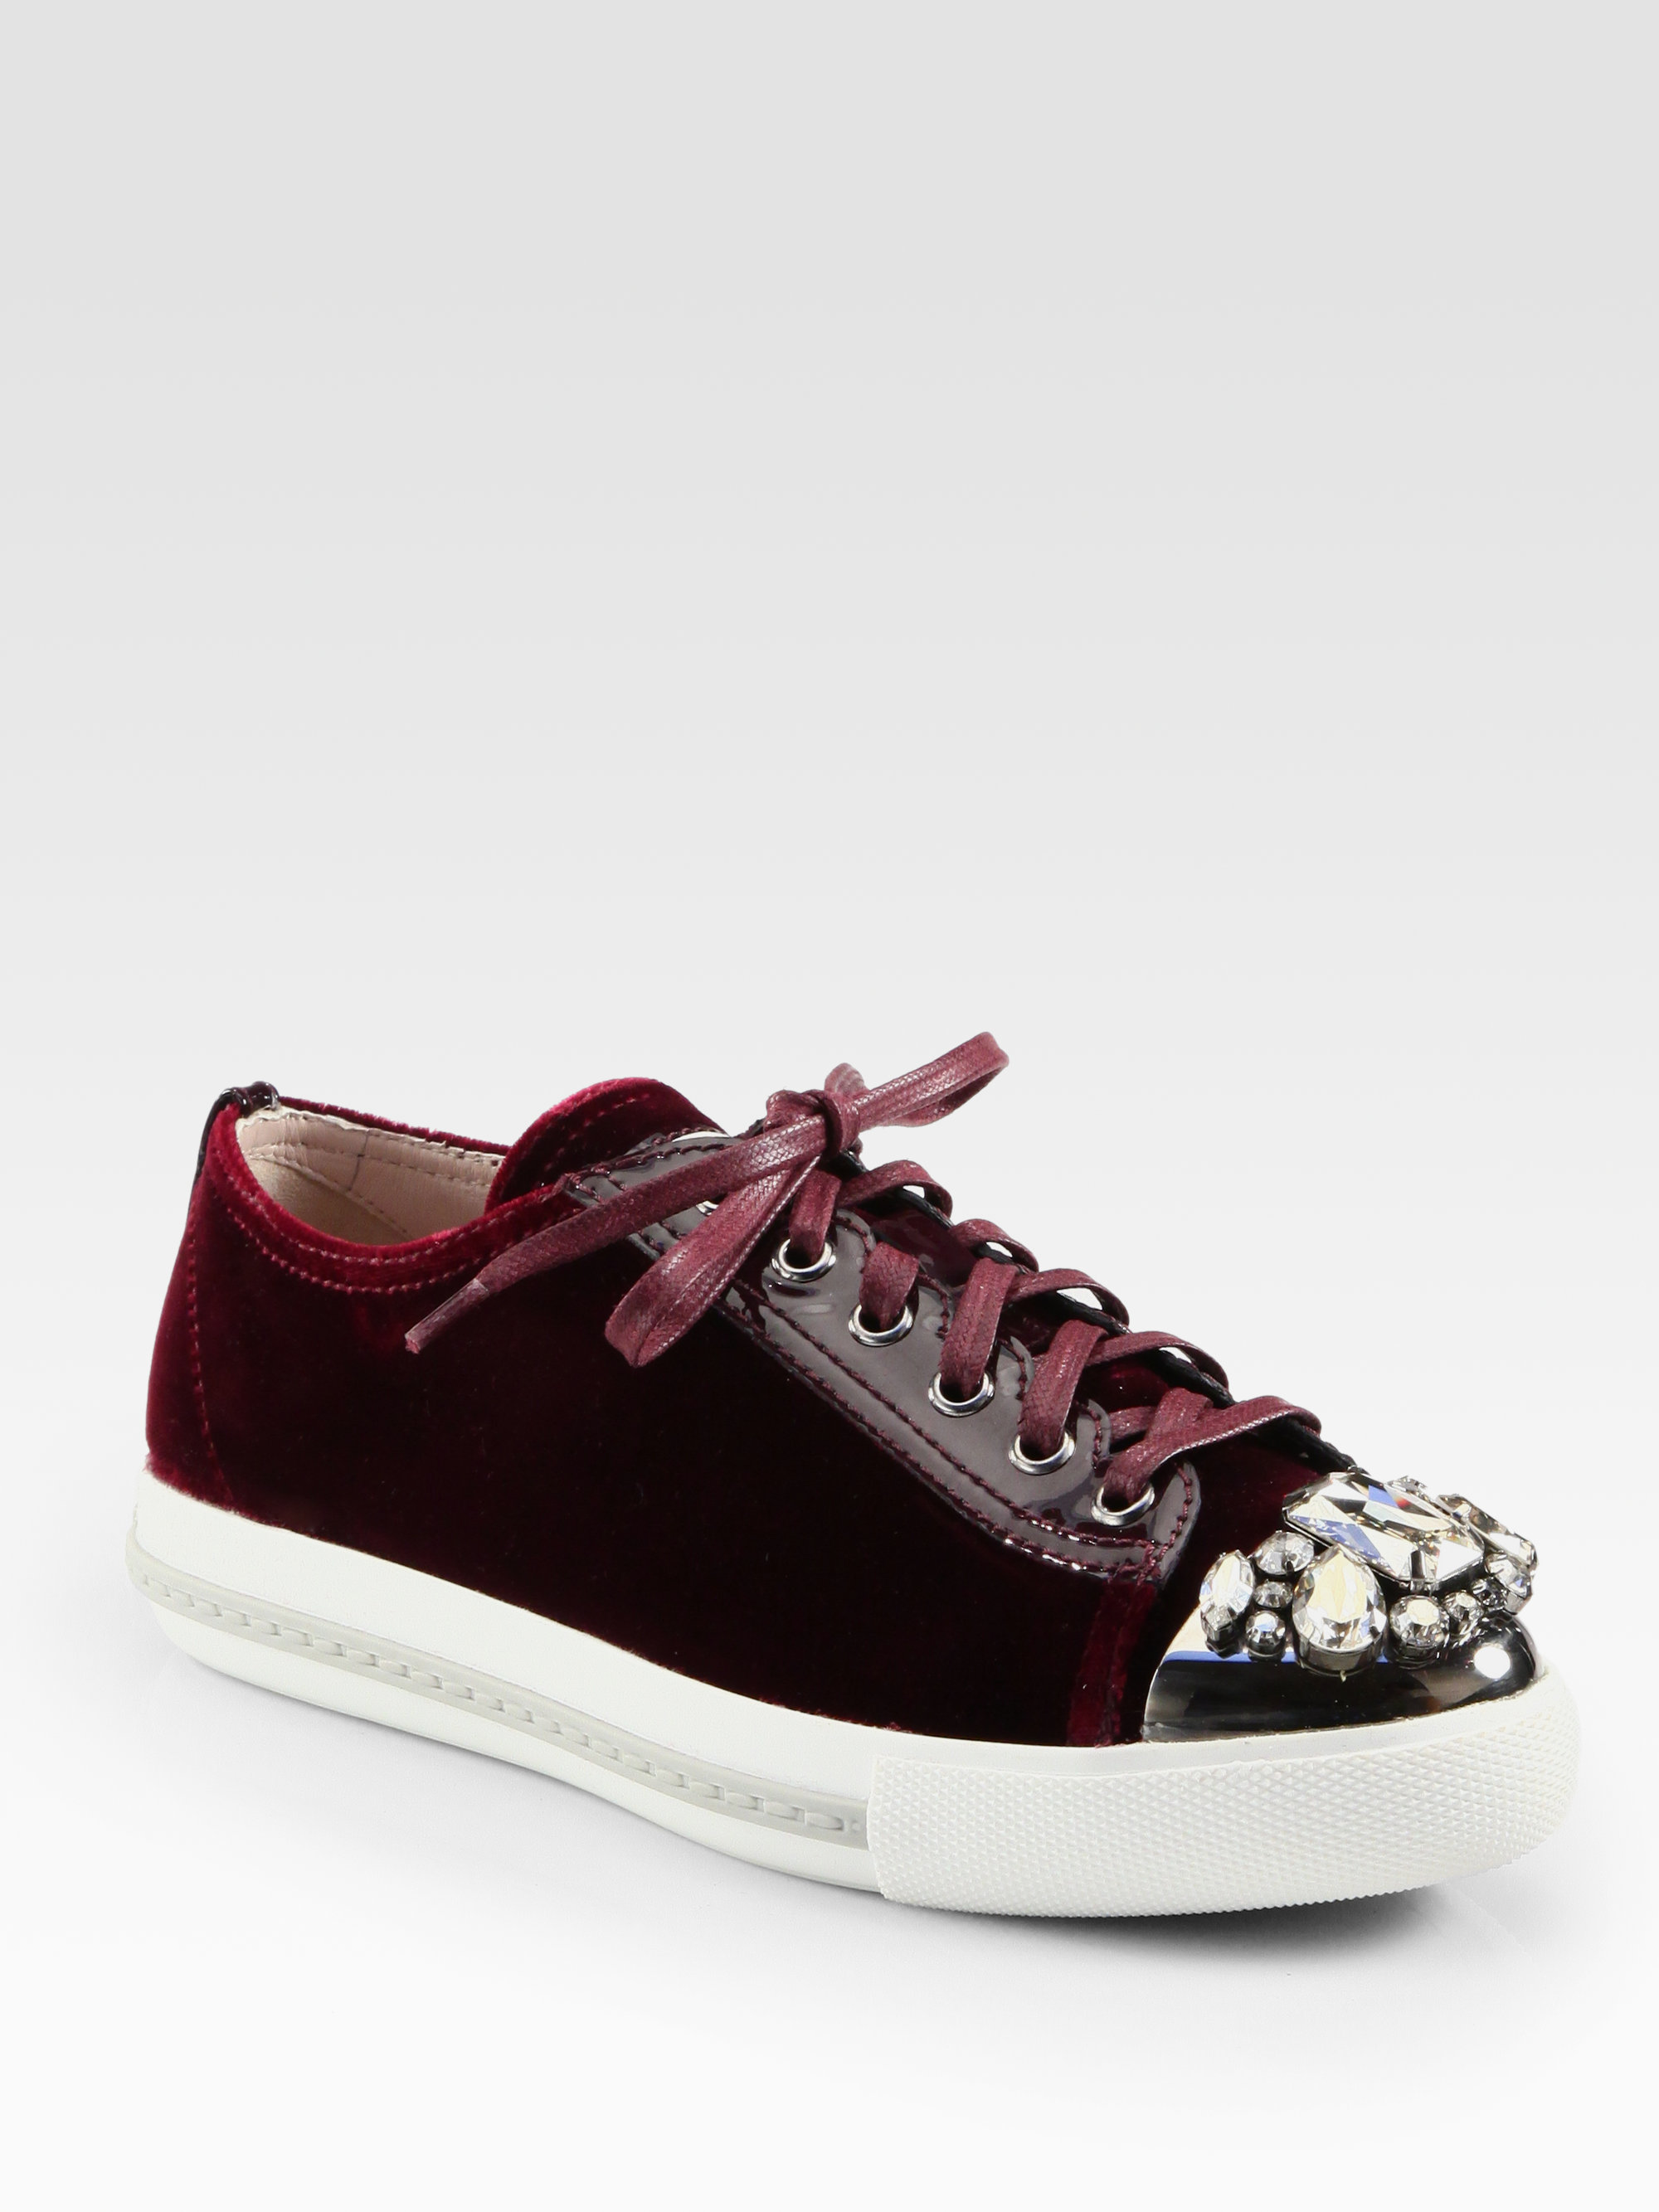 miu miu velvet jeweled laceup sneakers in red lyst. Black Bedroom Furniture Sets. Home Design Ideas